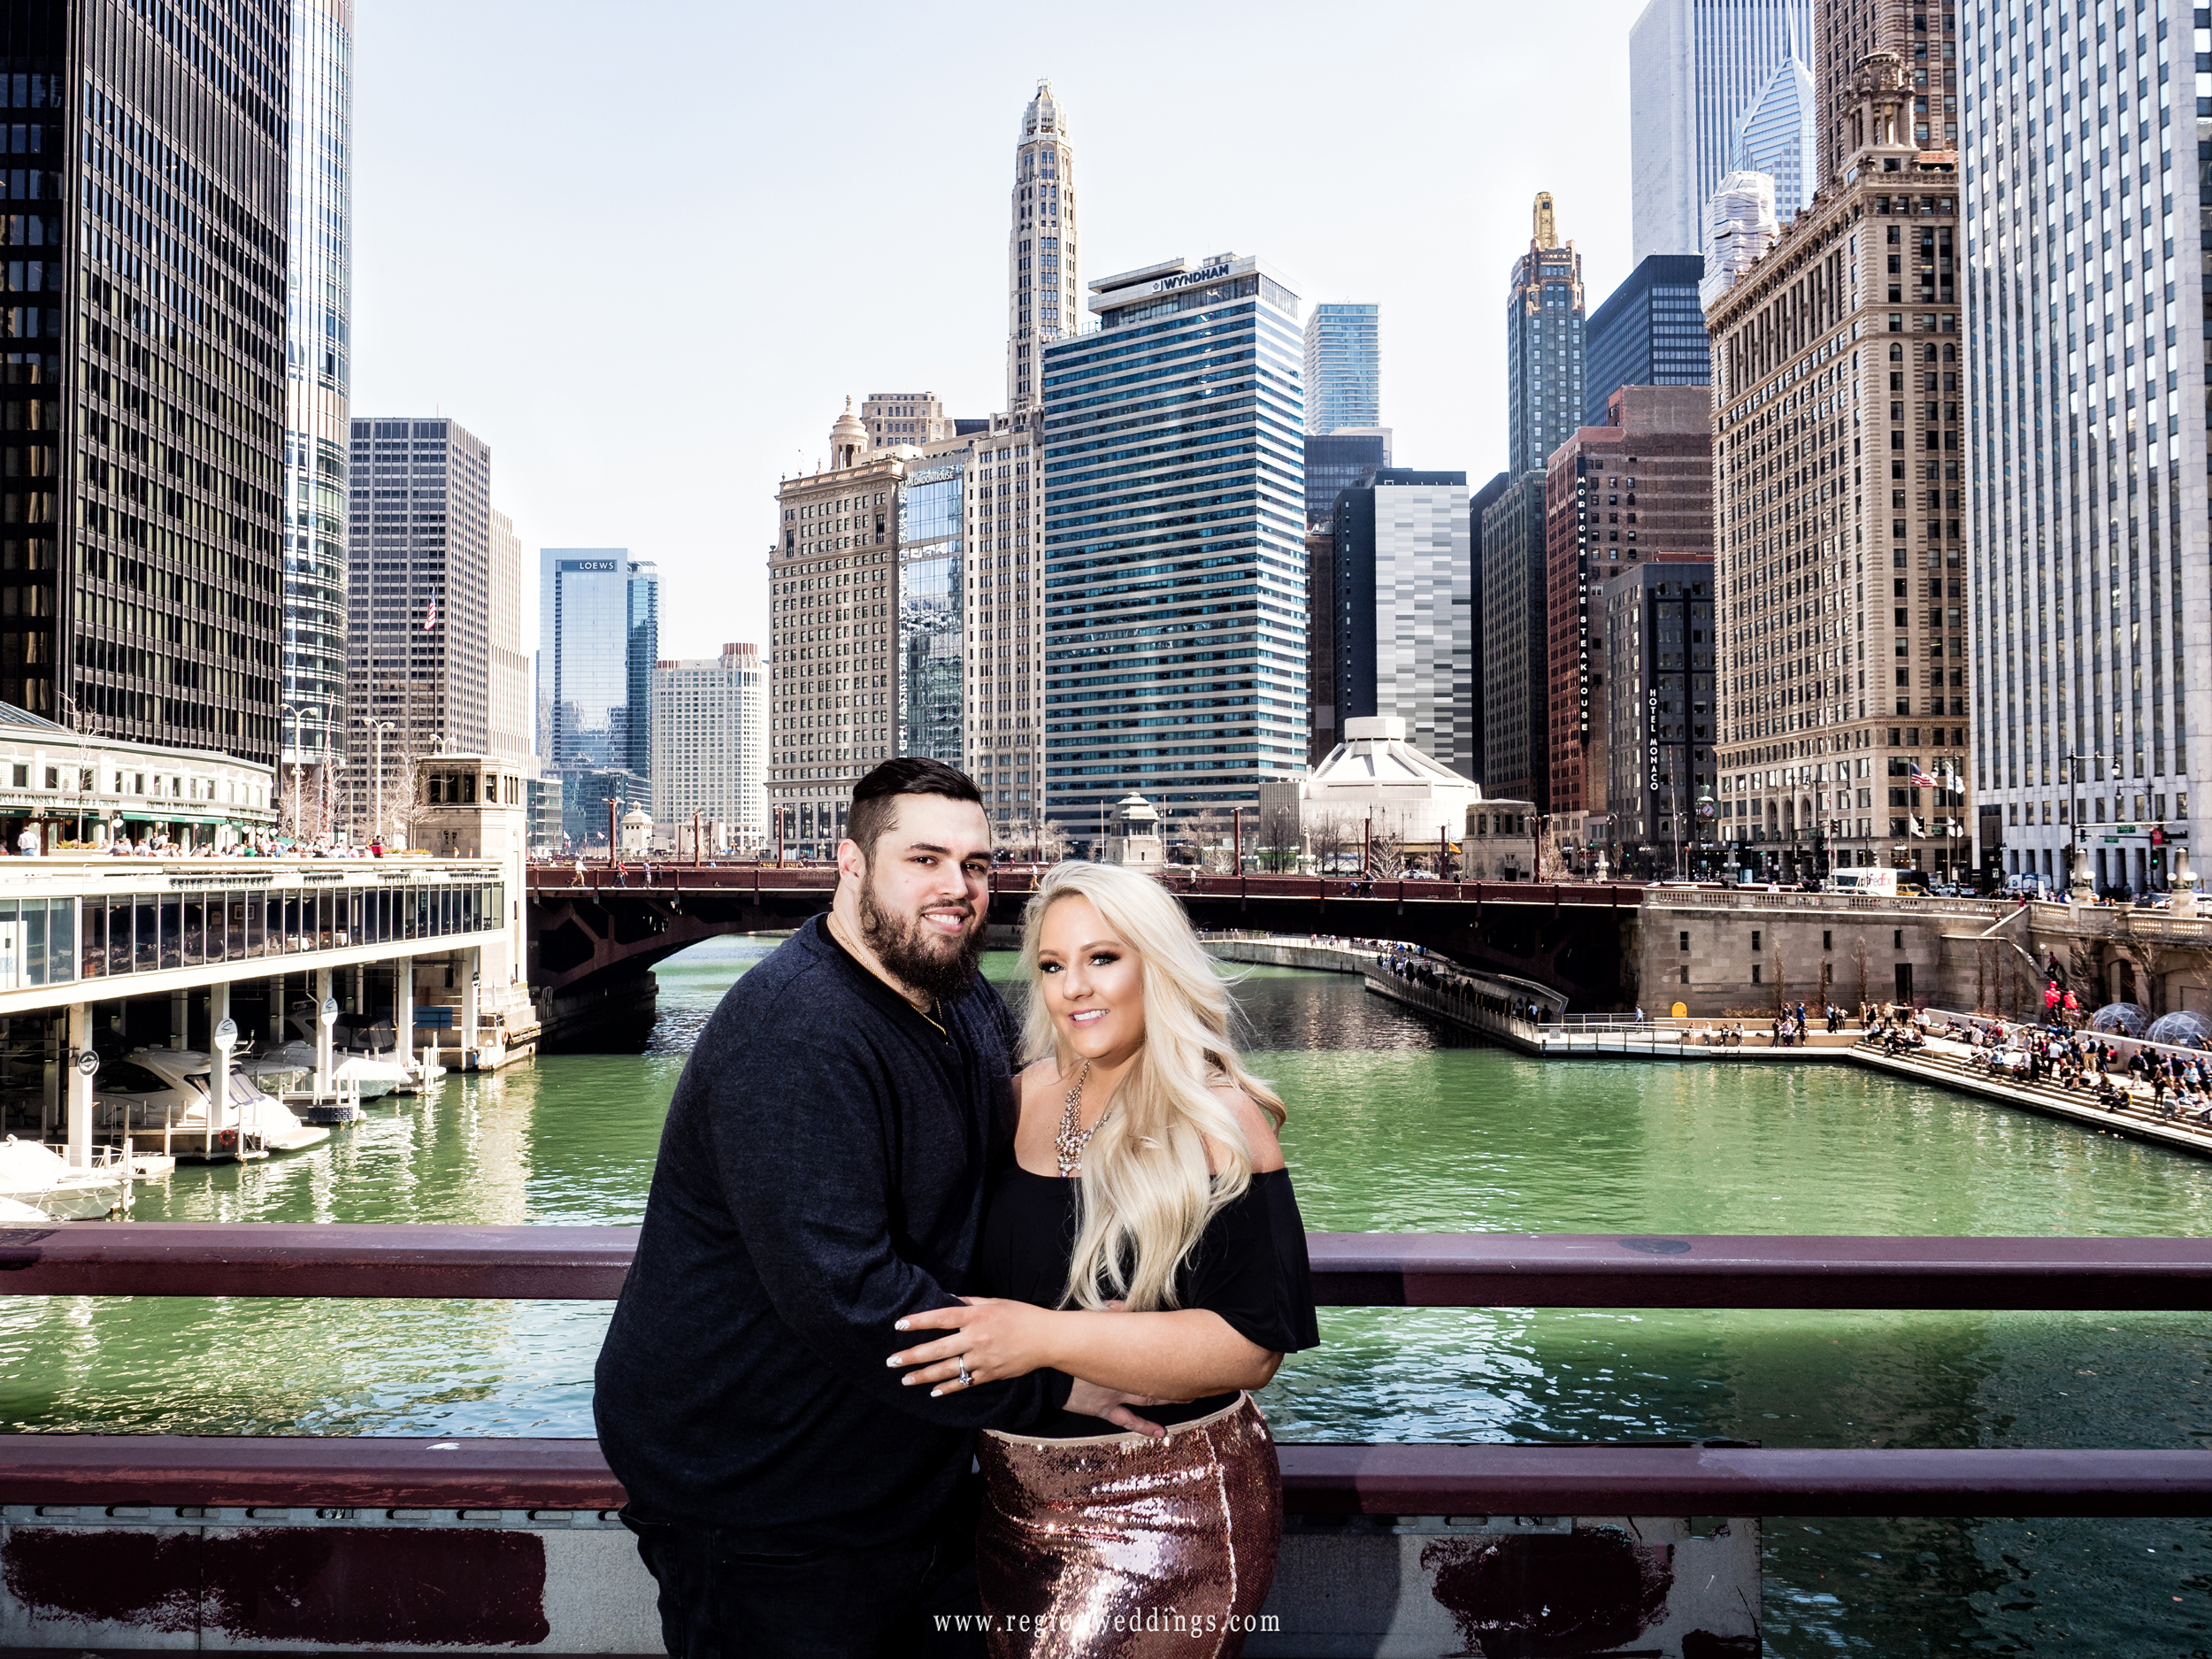 Chicago engagement portrait on the Chicago River.